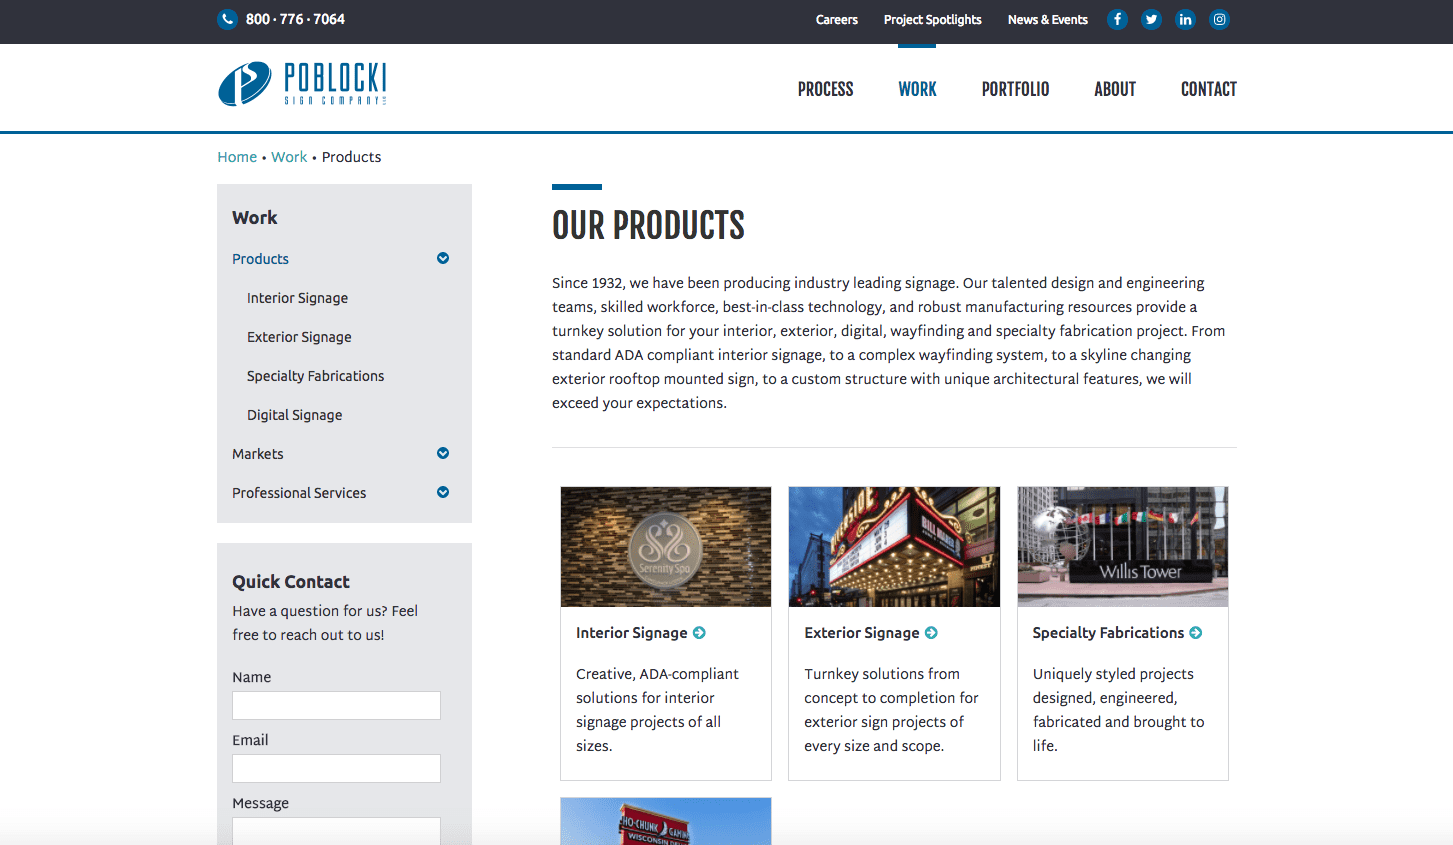 Poblocki Sign Company products page